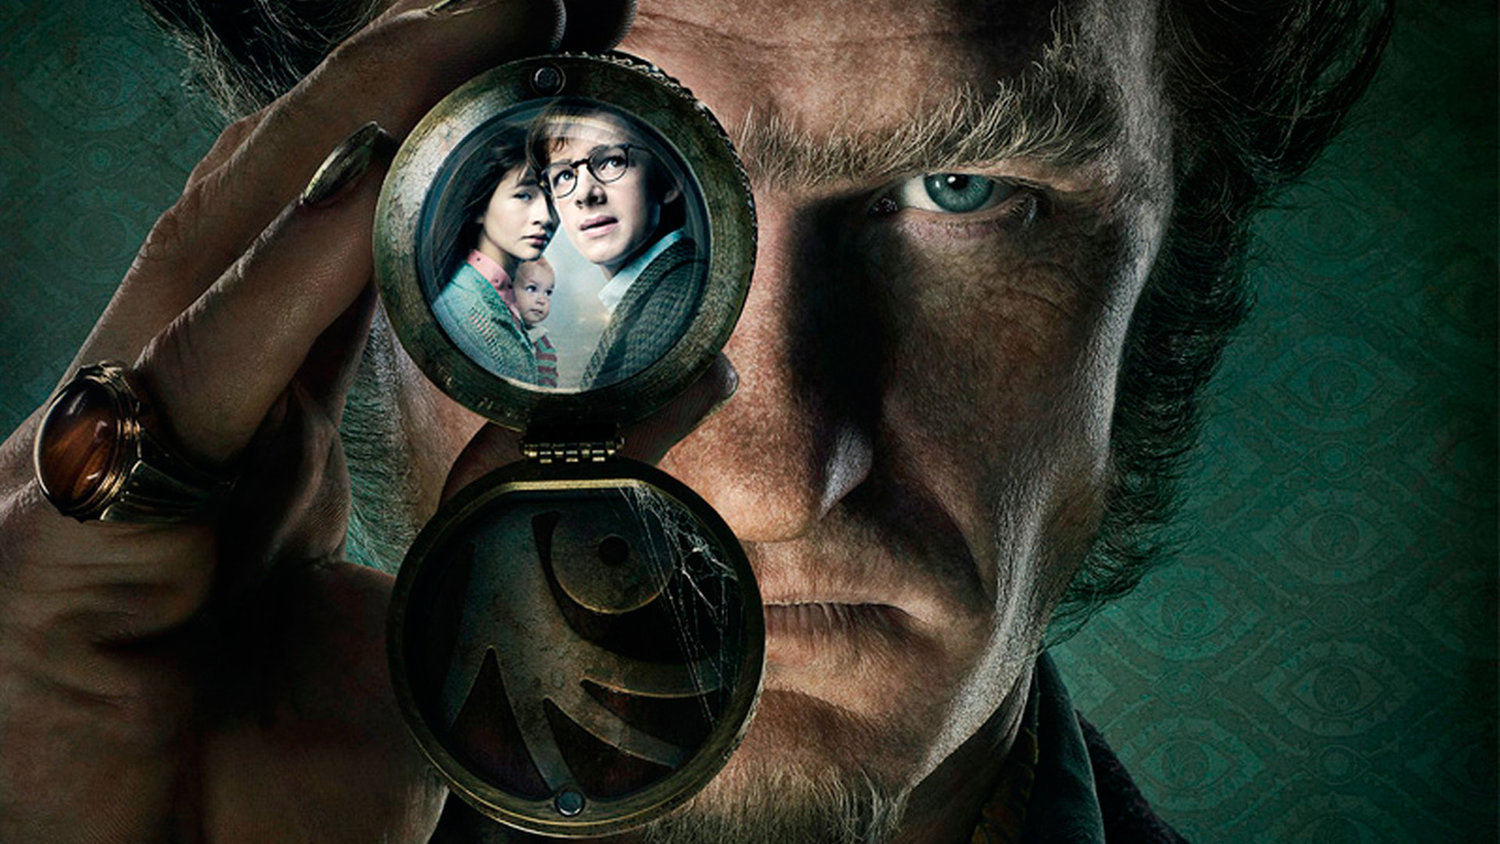 A SERIES OF UNFORTUNATE EVENTS Has Been Renewed for Season 2